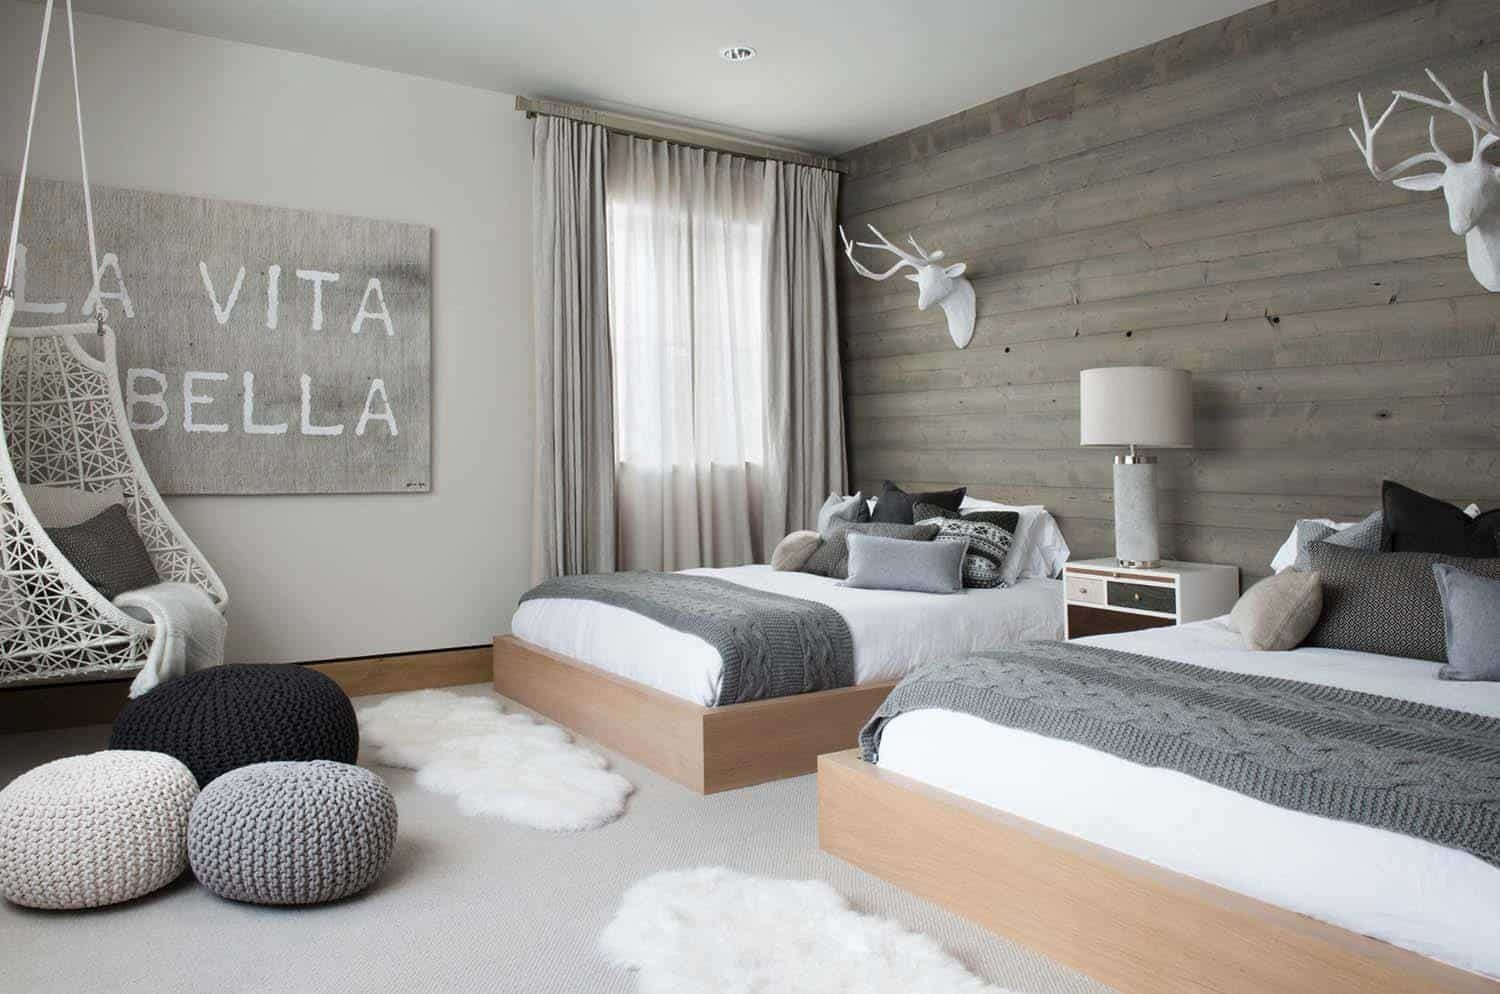 Scandinavian Bedroom Design - 3 Lovely Scandi Bedroom Ideas